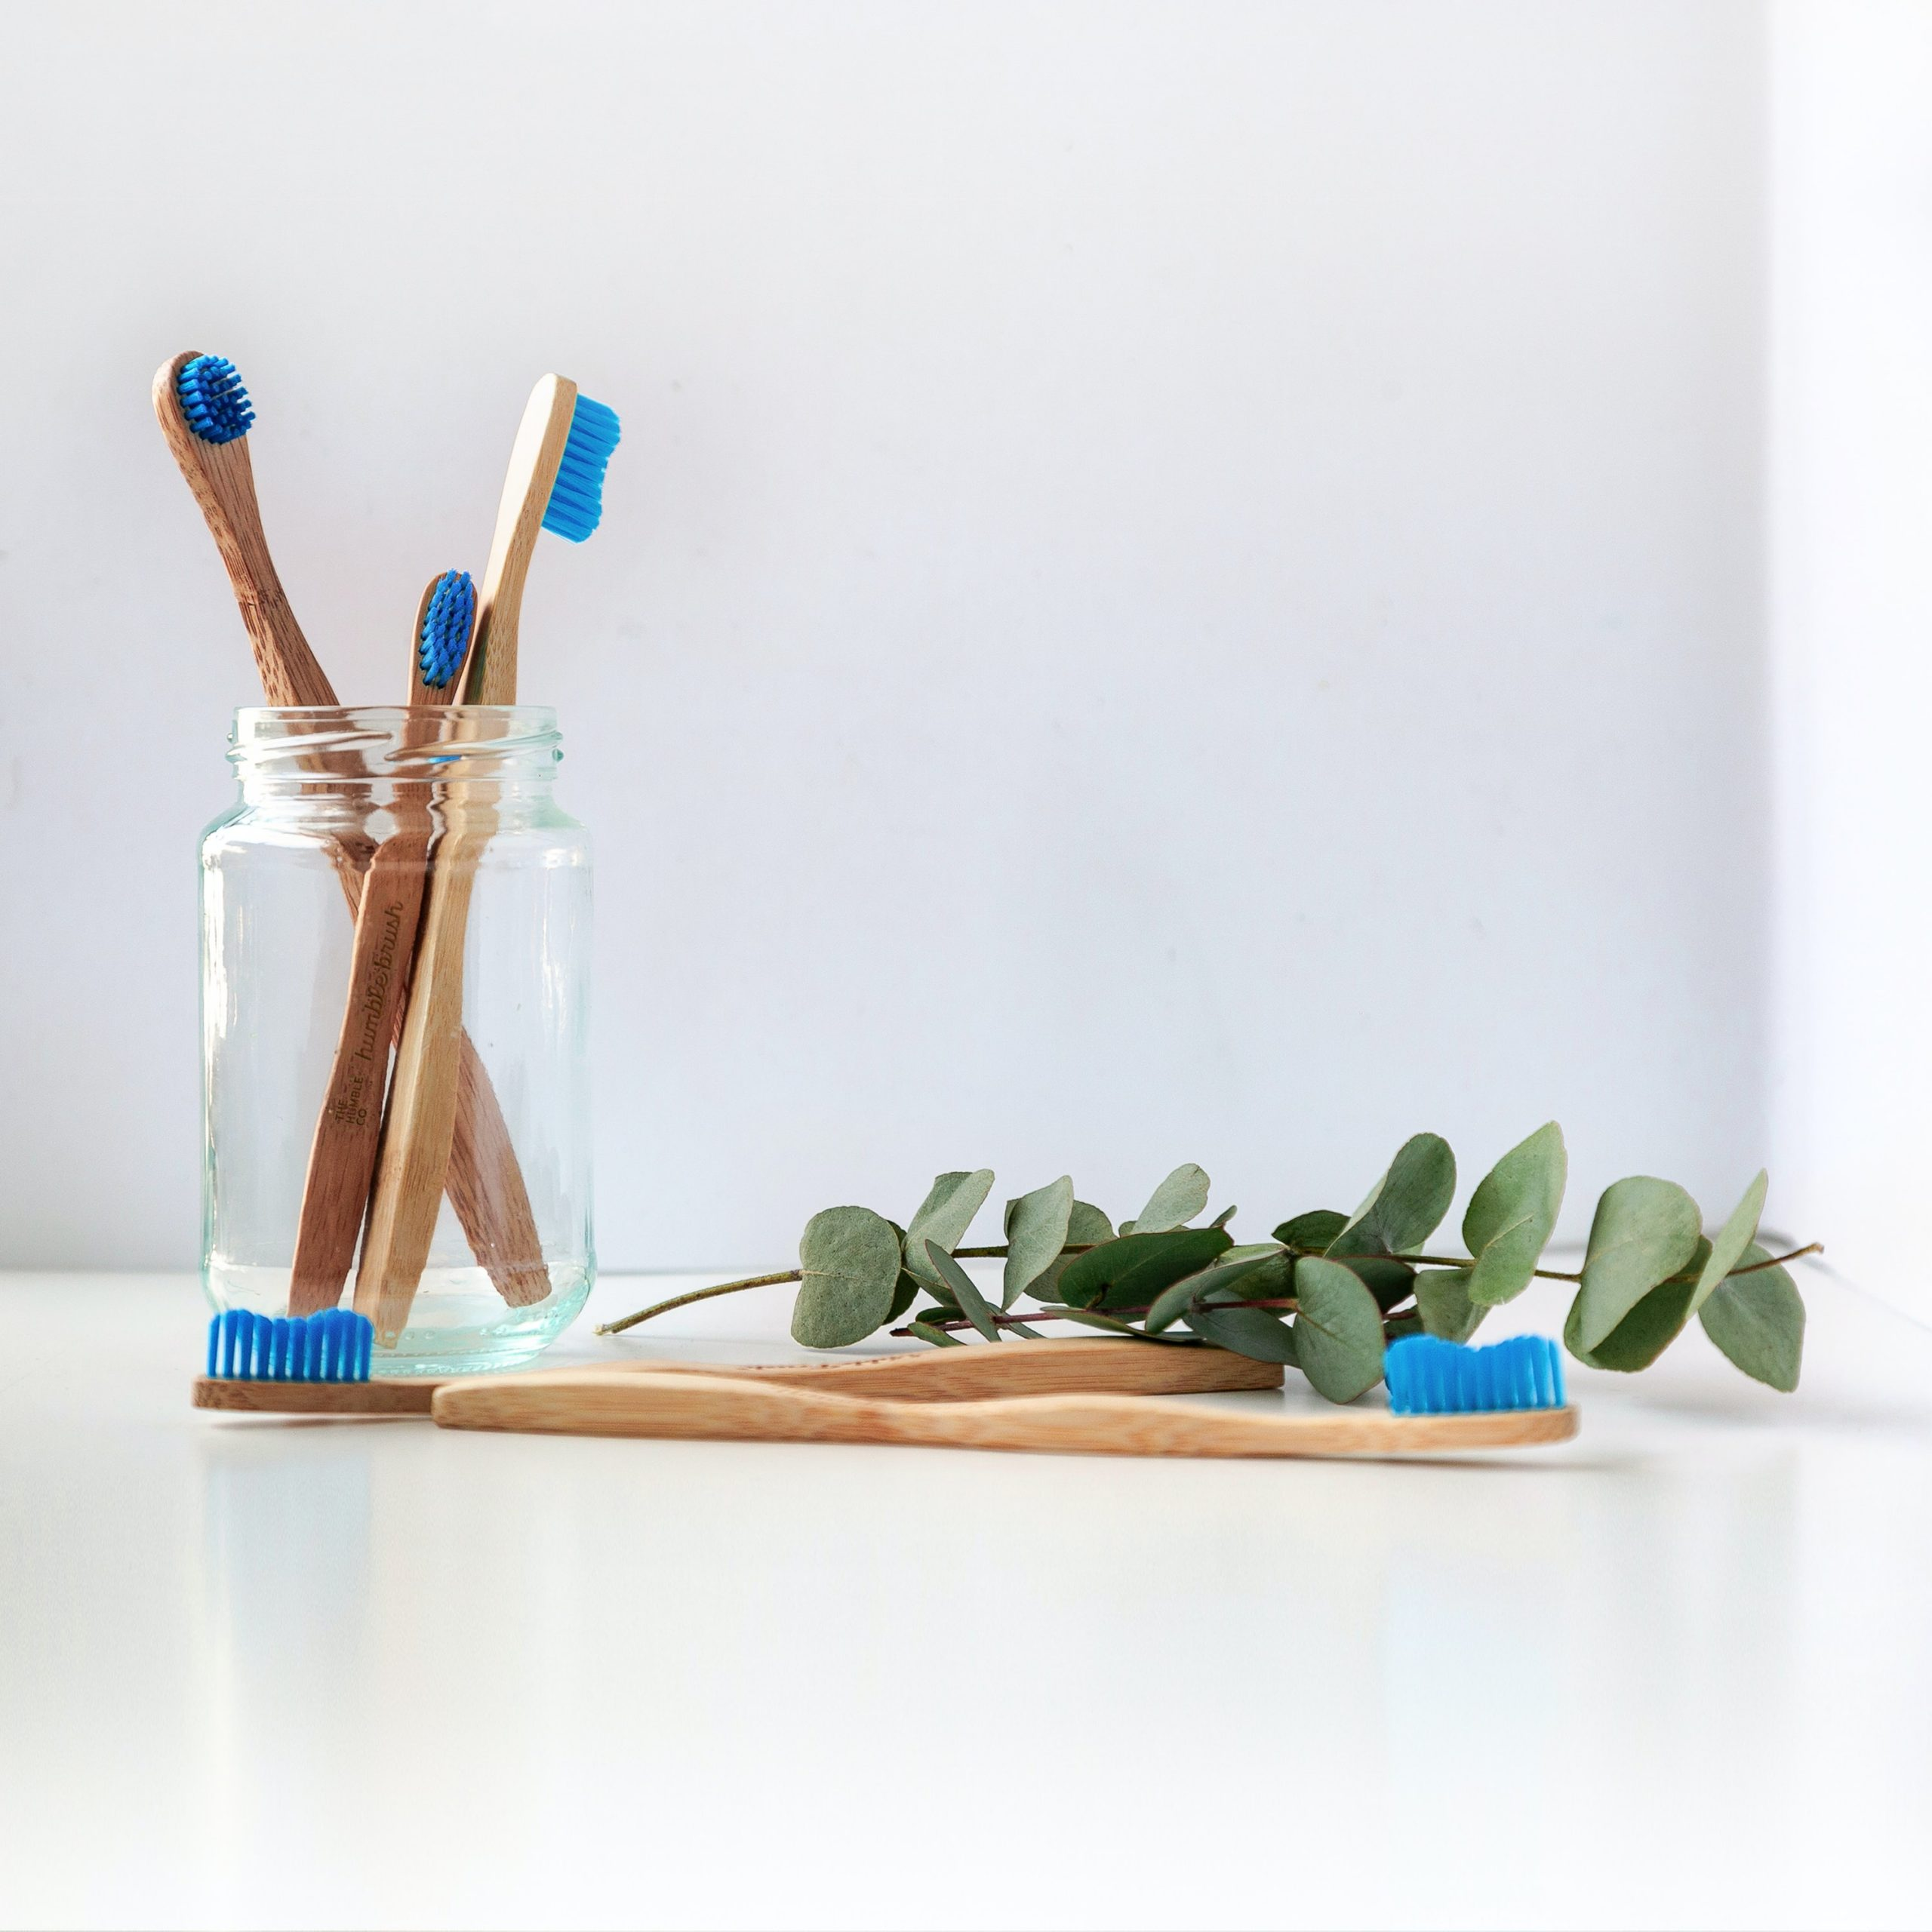 Four wooden toothbrushes in a glass jar with a sprig of ivy near them